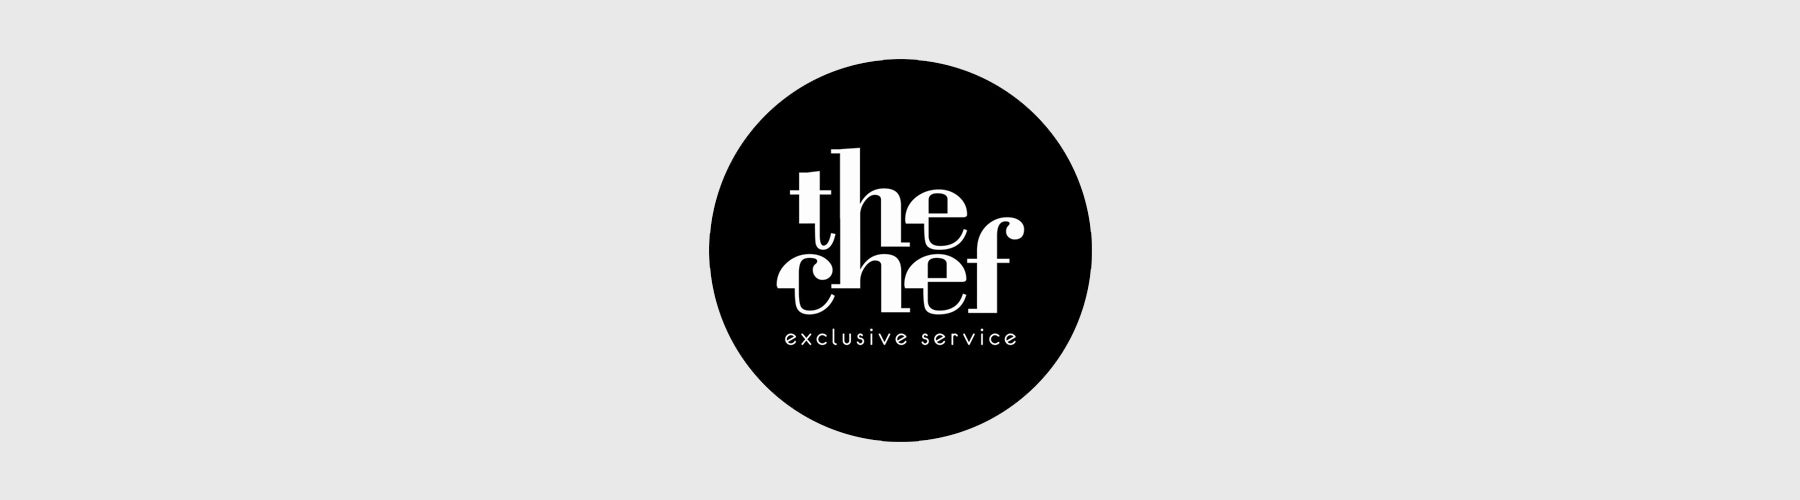 thechef03